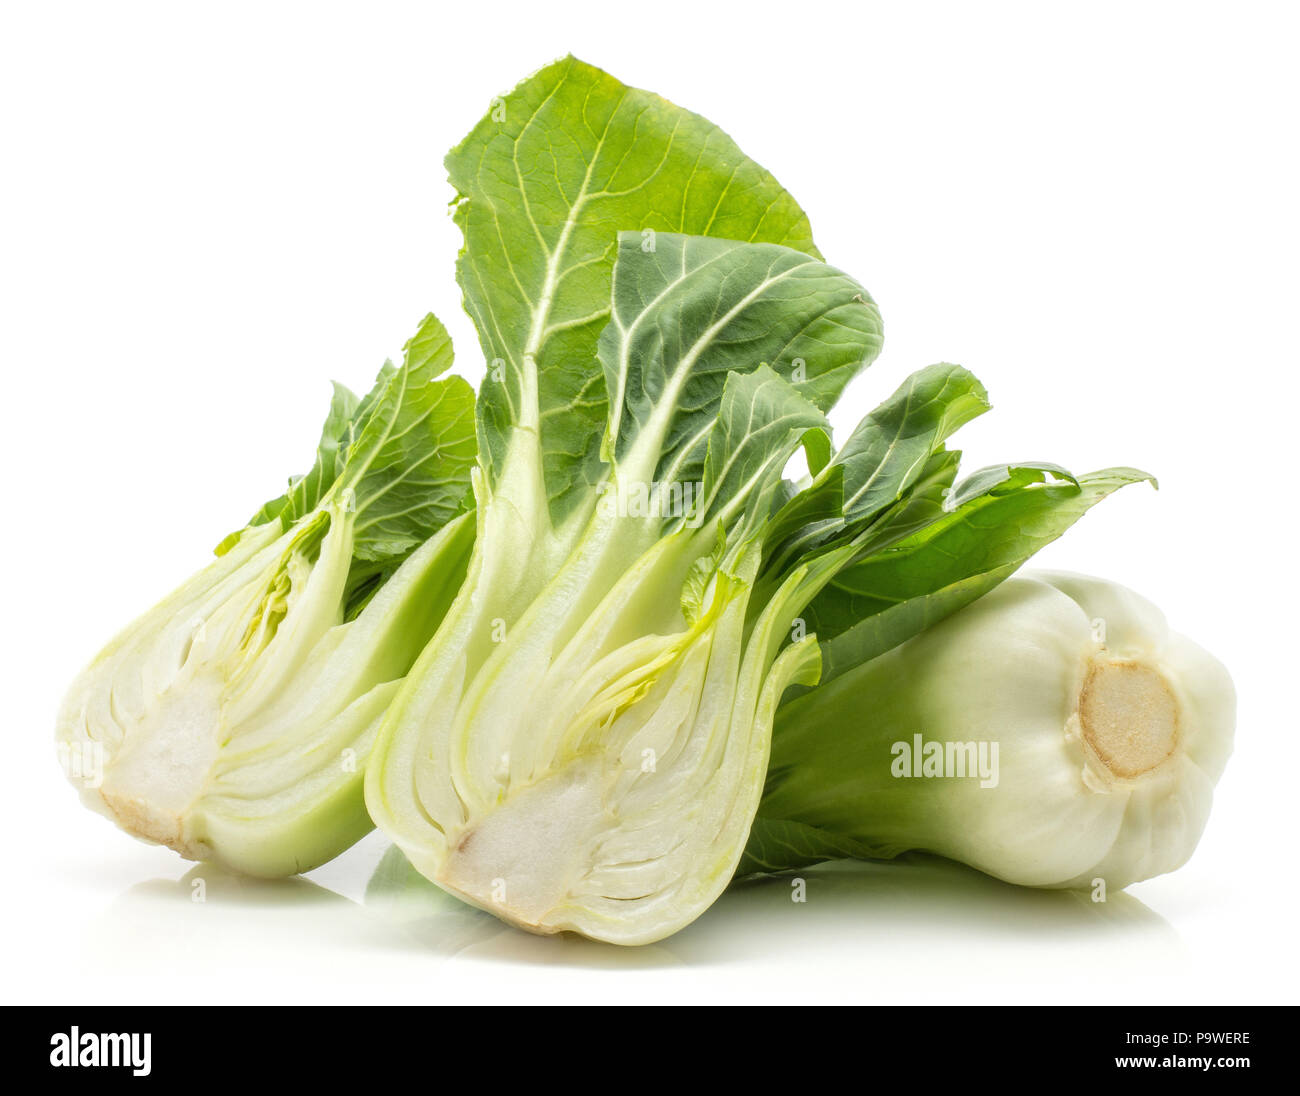 Bok choy (Pak choi) one cabbage and two sliced halves isolated on white background - Stock Image